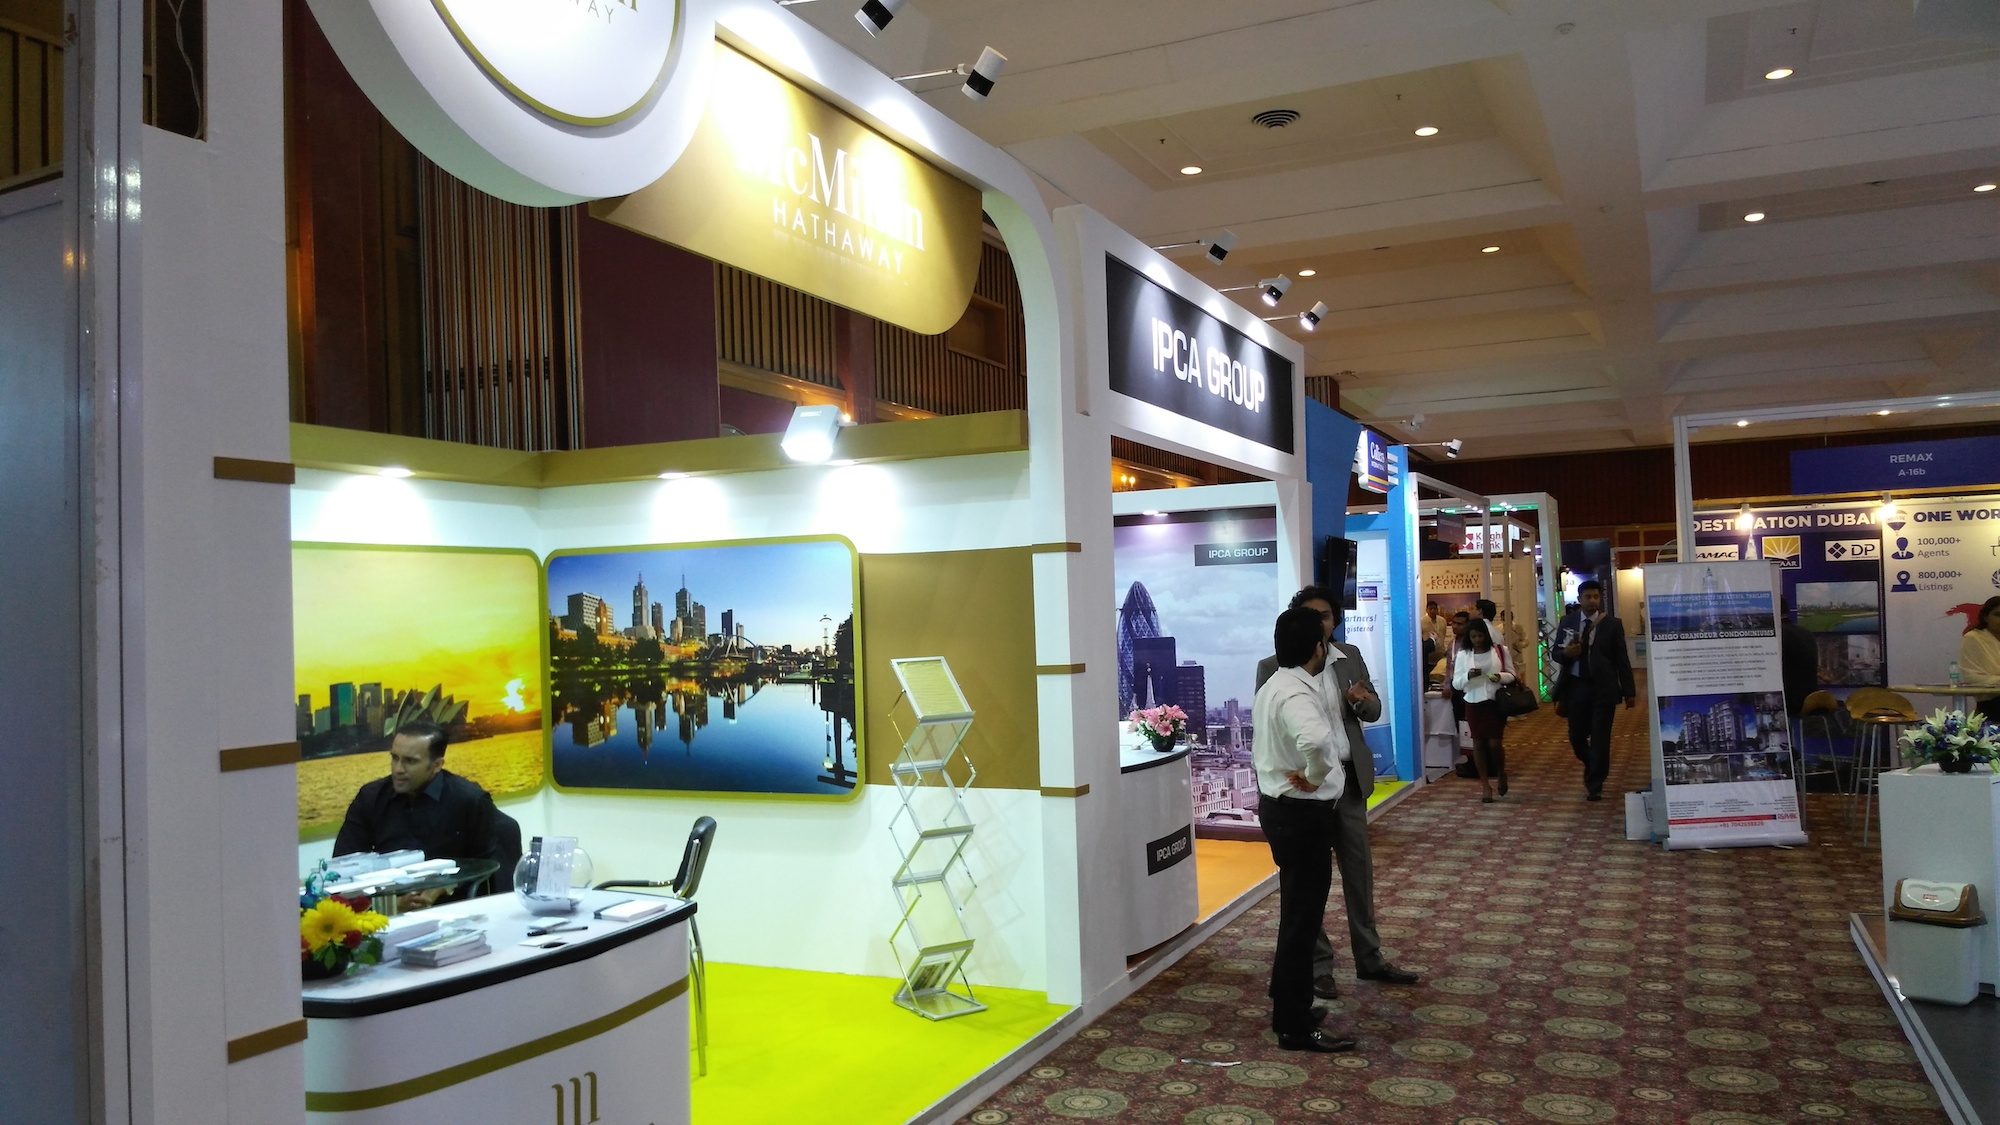 Stonehard's managing director attends IREX Property Expo in New Delhi, India4 - Stonehard